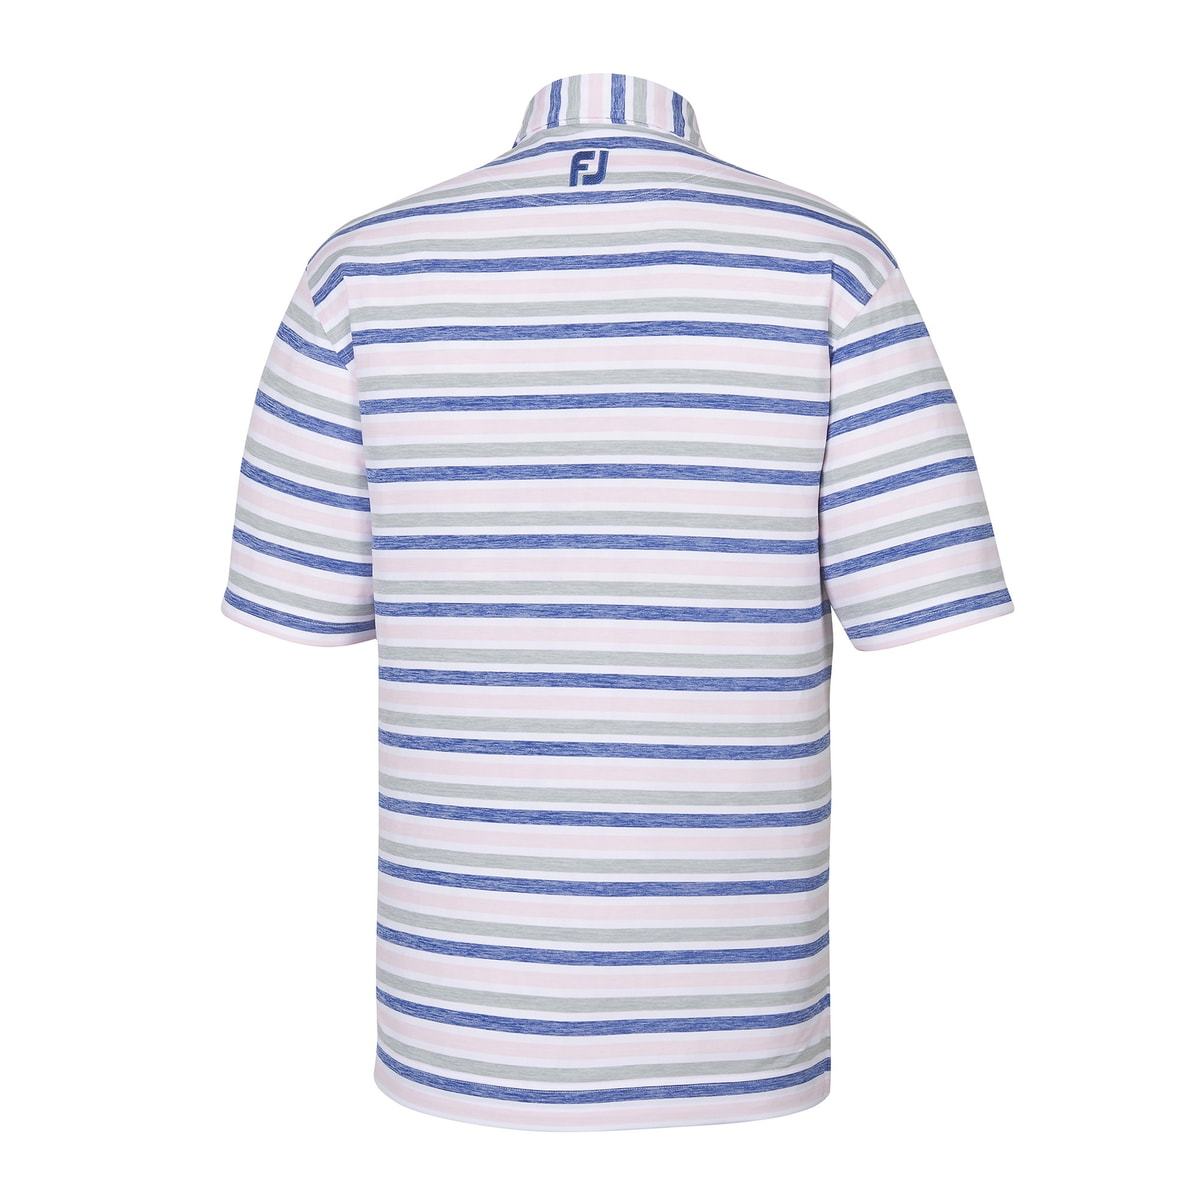 Lisle Melange Stripe Self Collar